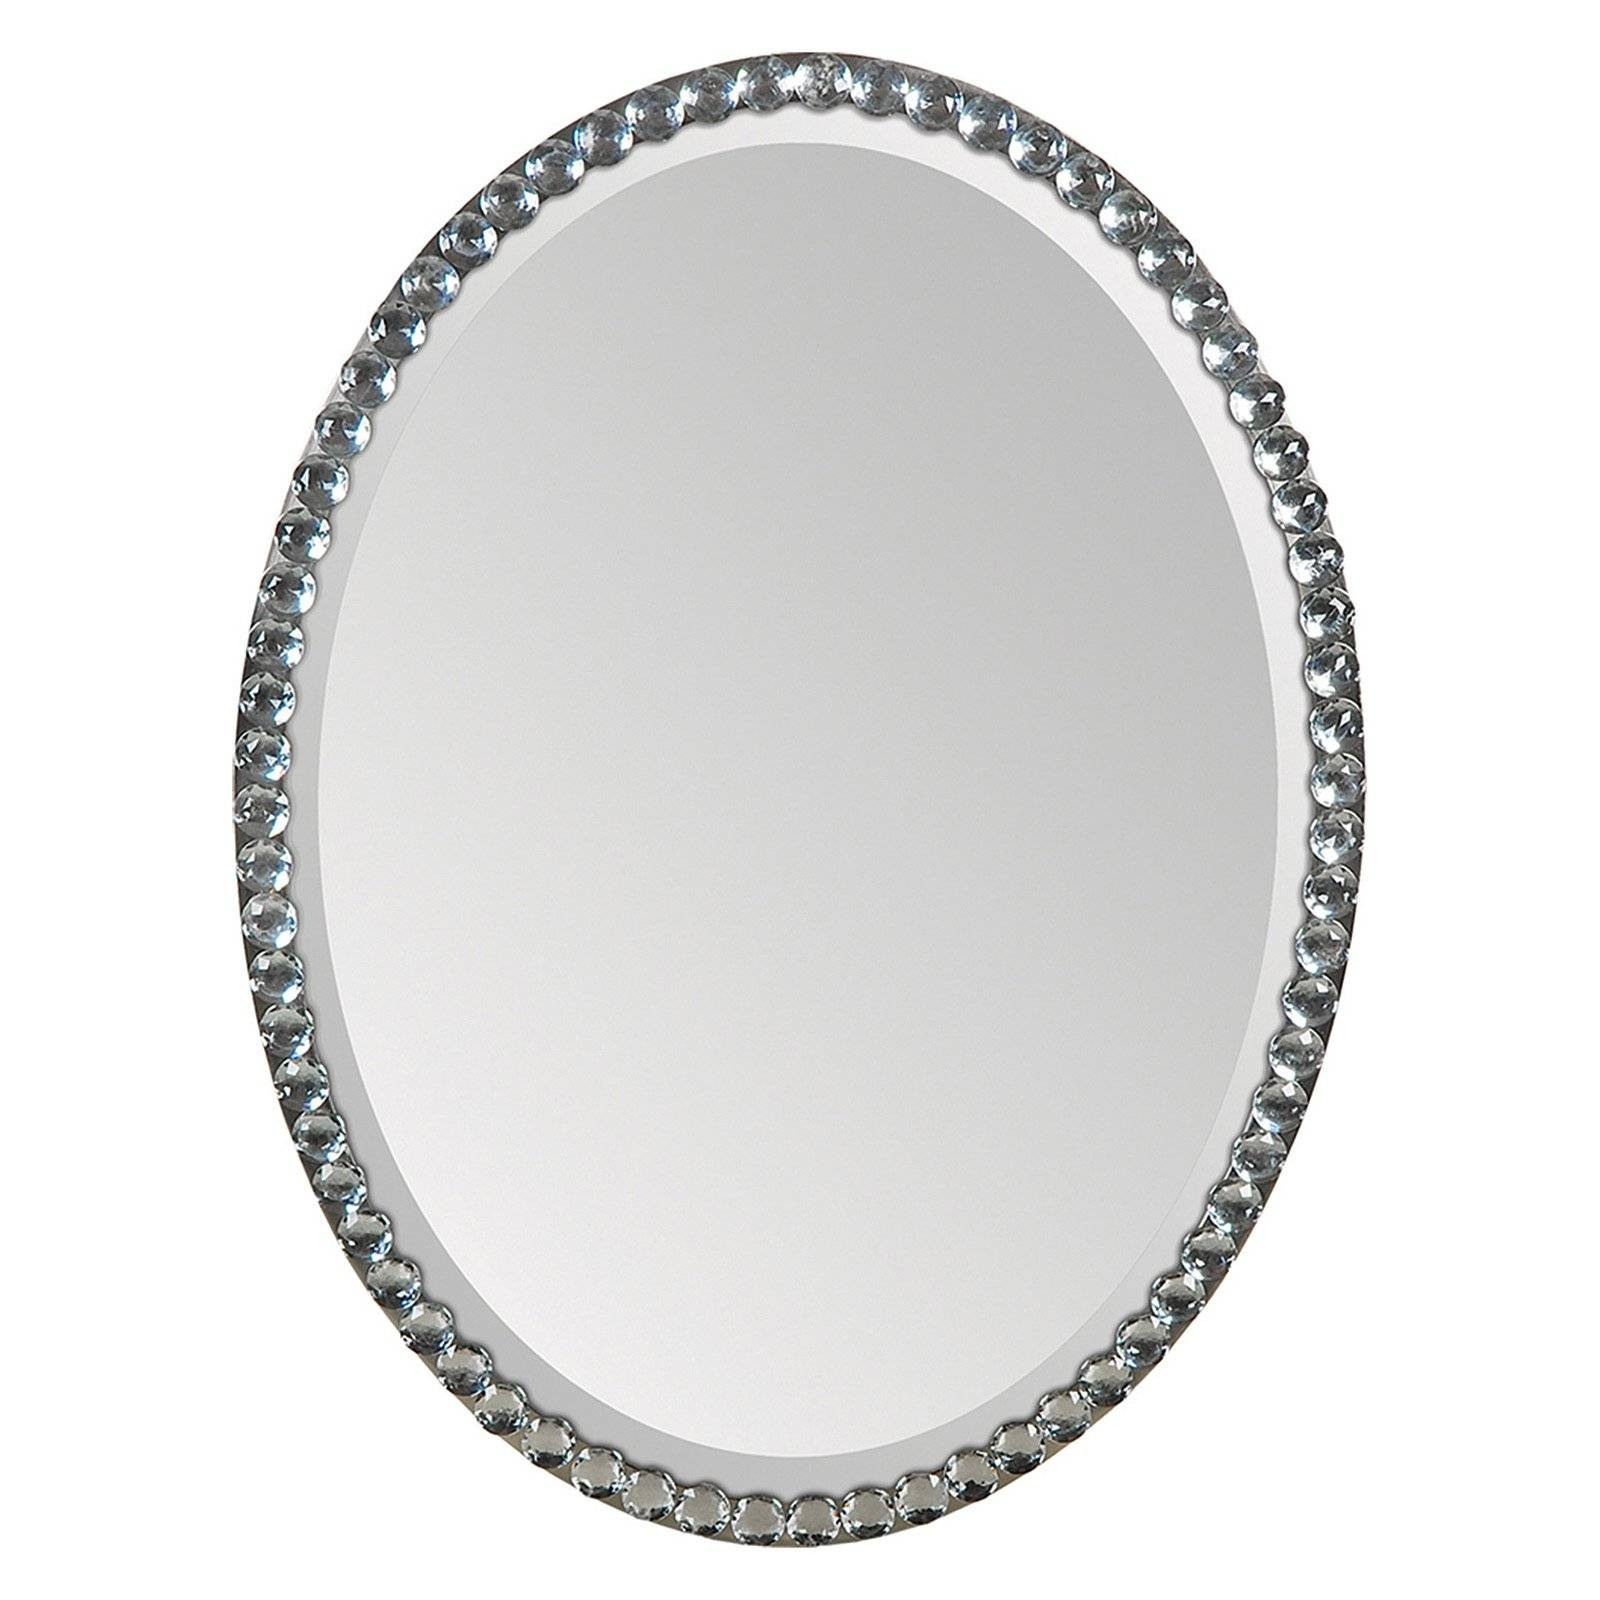 Ren-Wil Oval Crystal Framed Wall Mirror - 24W X 32H In. - Walmart within Silver Oval Mirrors (Image 17 of 25)